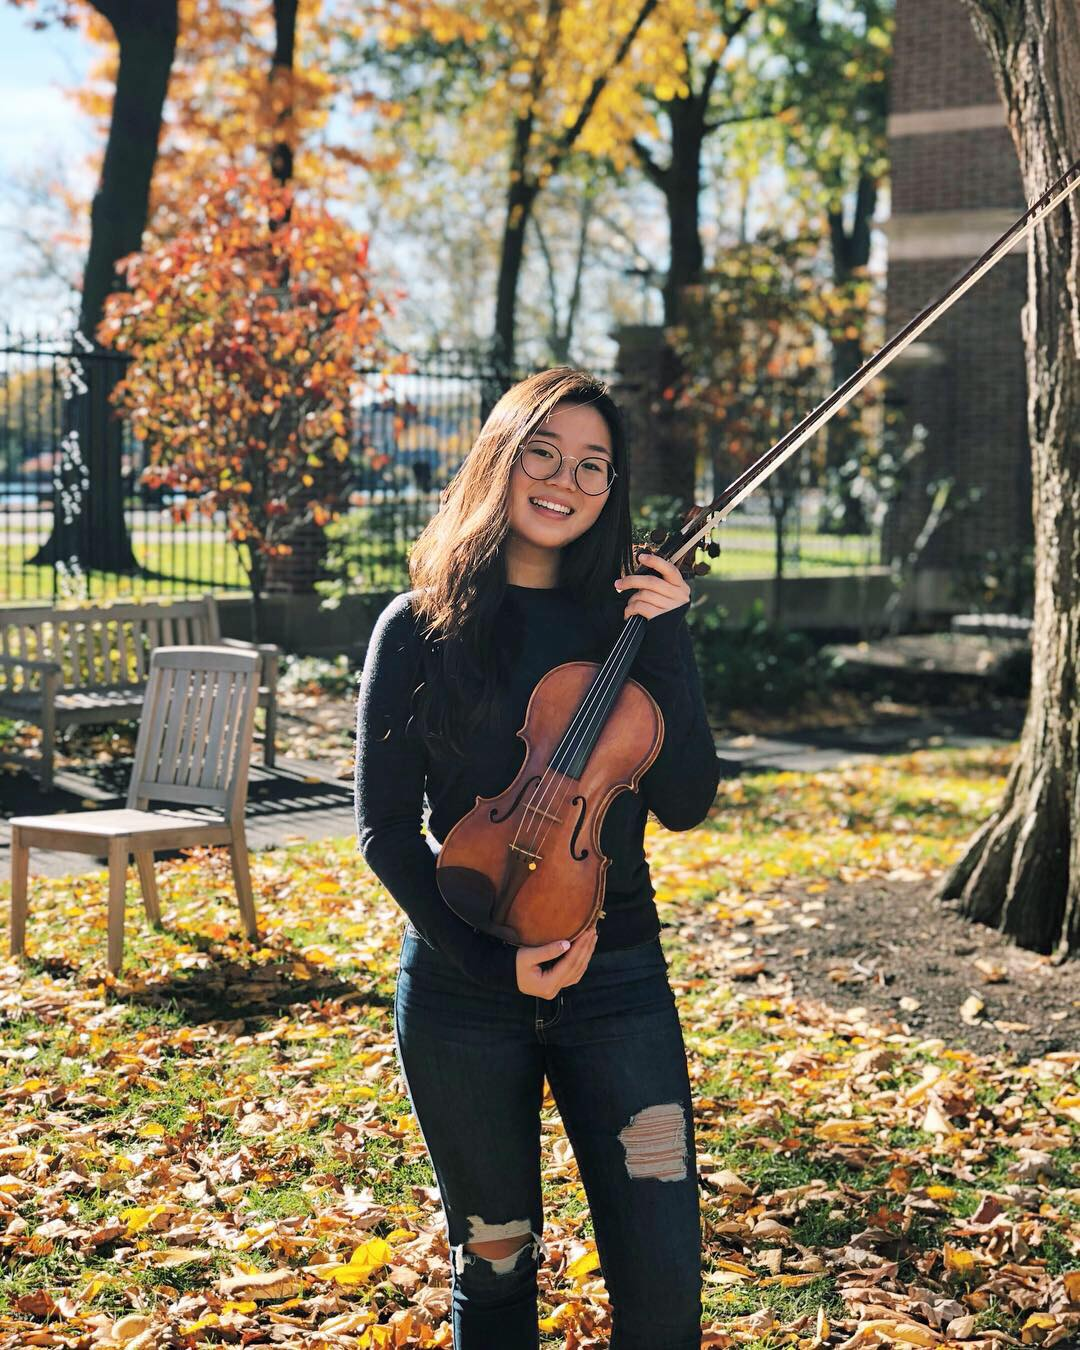 Alyssa Kim '22  is a sophomore in Mather. Though she's only been in Brattle a short time, she's already realized that her least favorite person in Brattle is that Asian violinist. We definitely know who she's talking about. ;) When she isn't playing the violin, she often can be found extracting other people's blackheads or reminiscing on her past experiences as a pad thai eating competition champion.